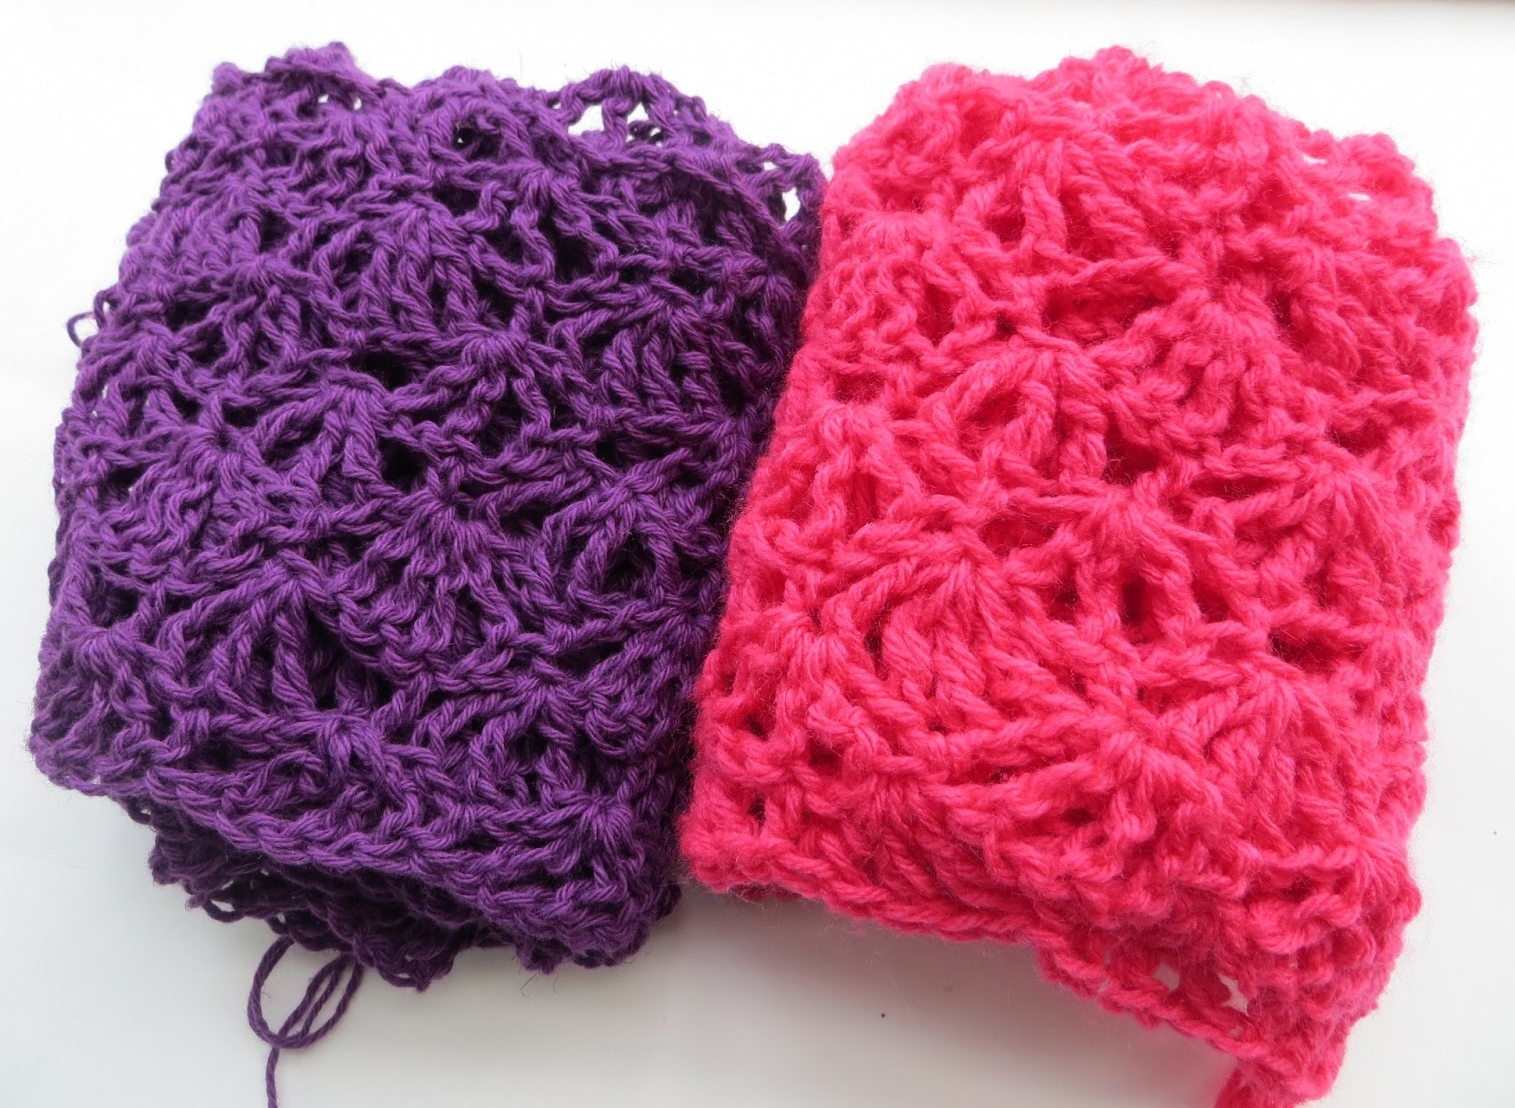 Free Crochet Projects : Crochet Dreamz: Alana Lacy Scarf, Free Crochet Pattern